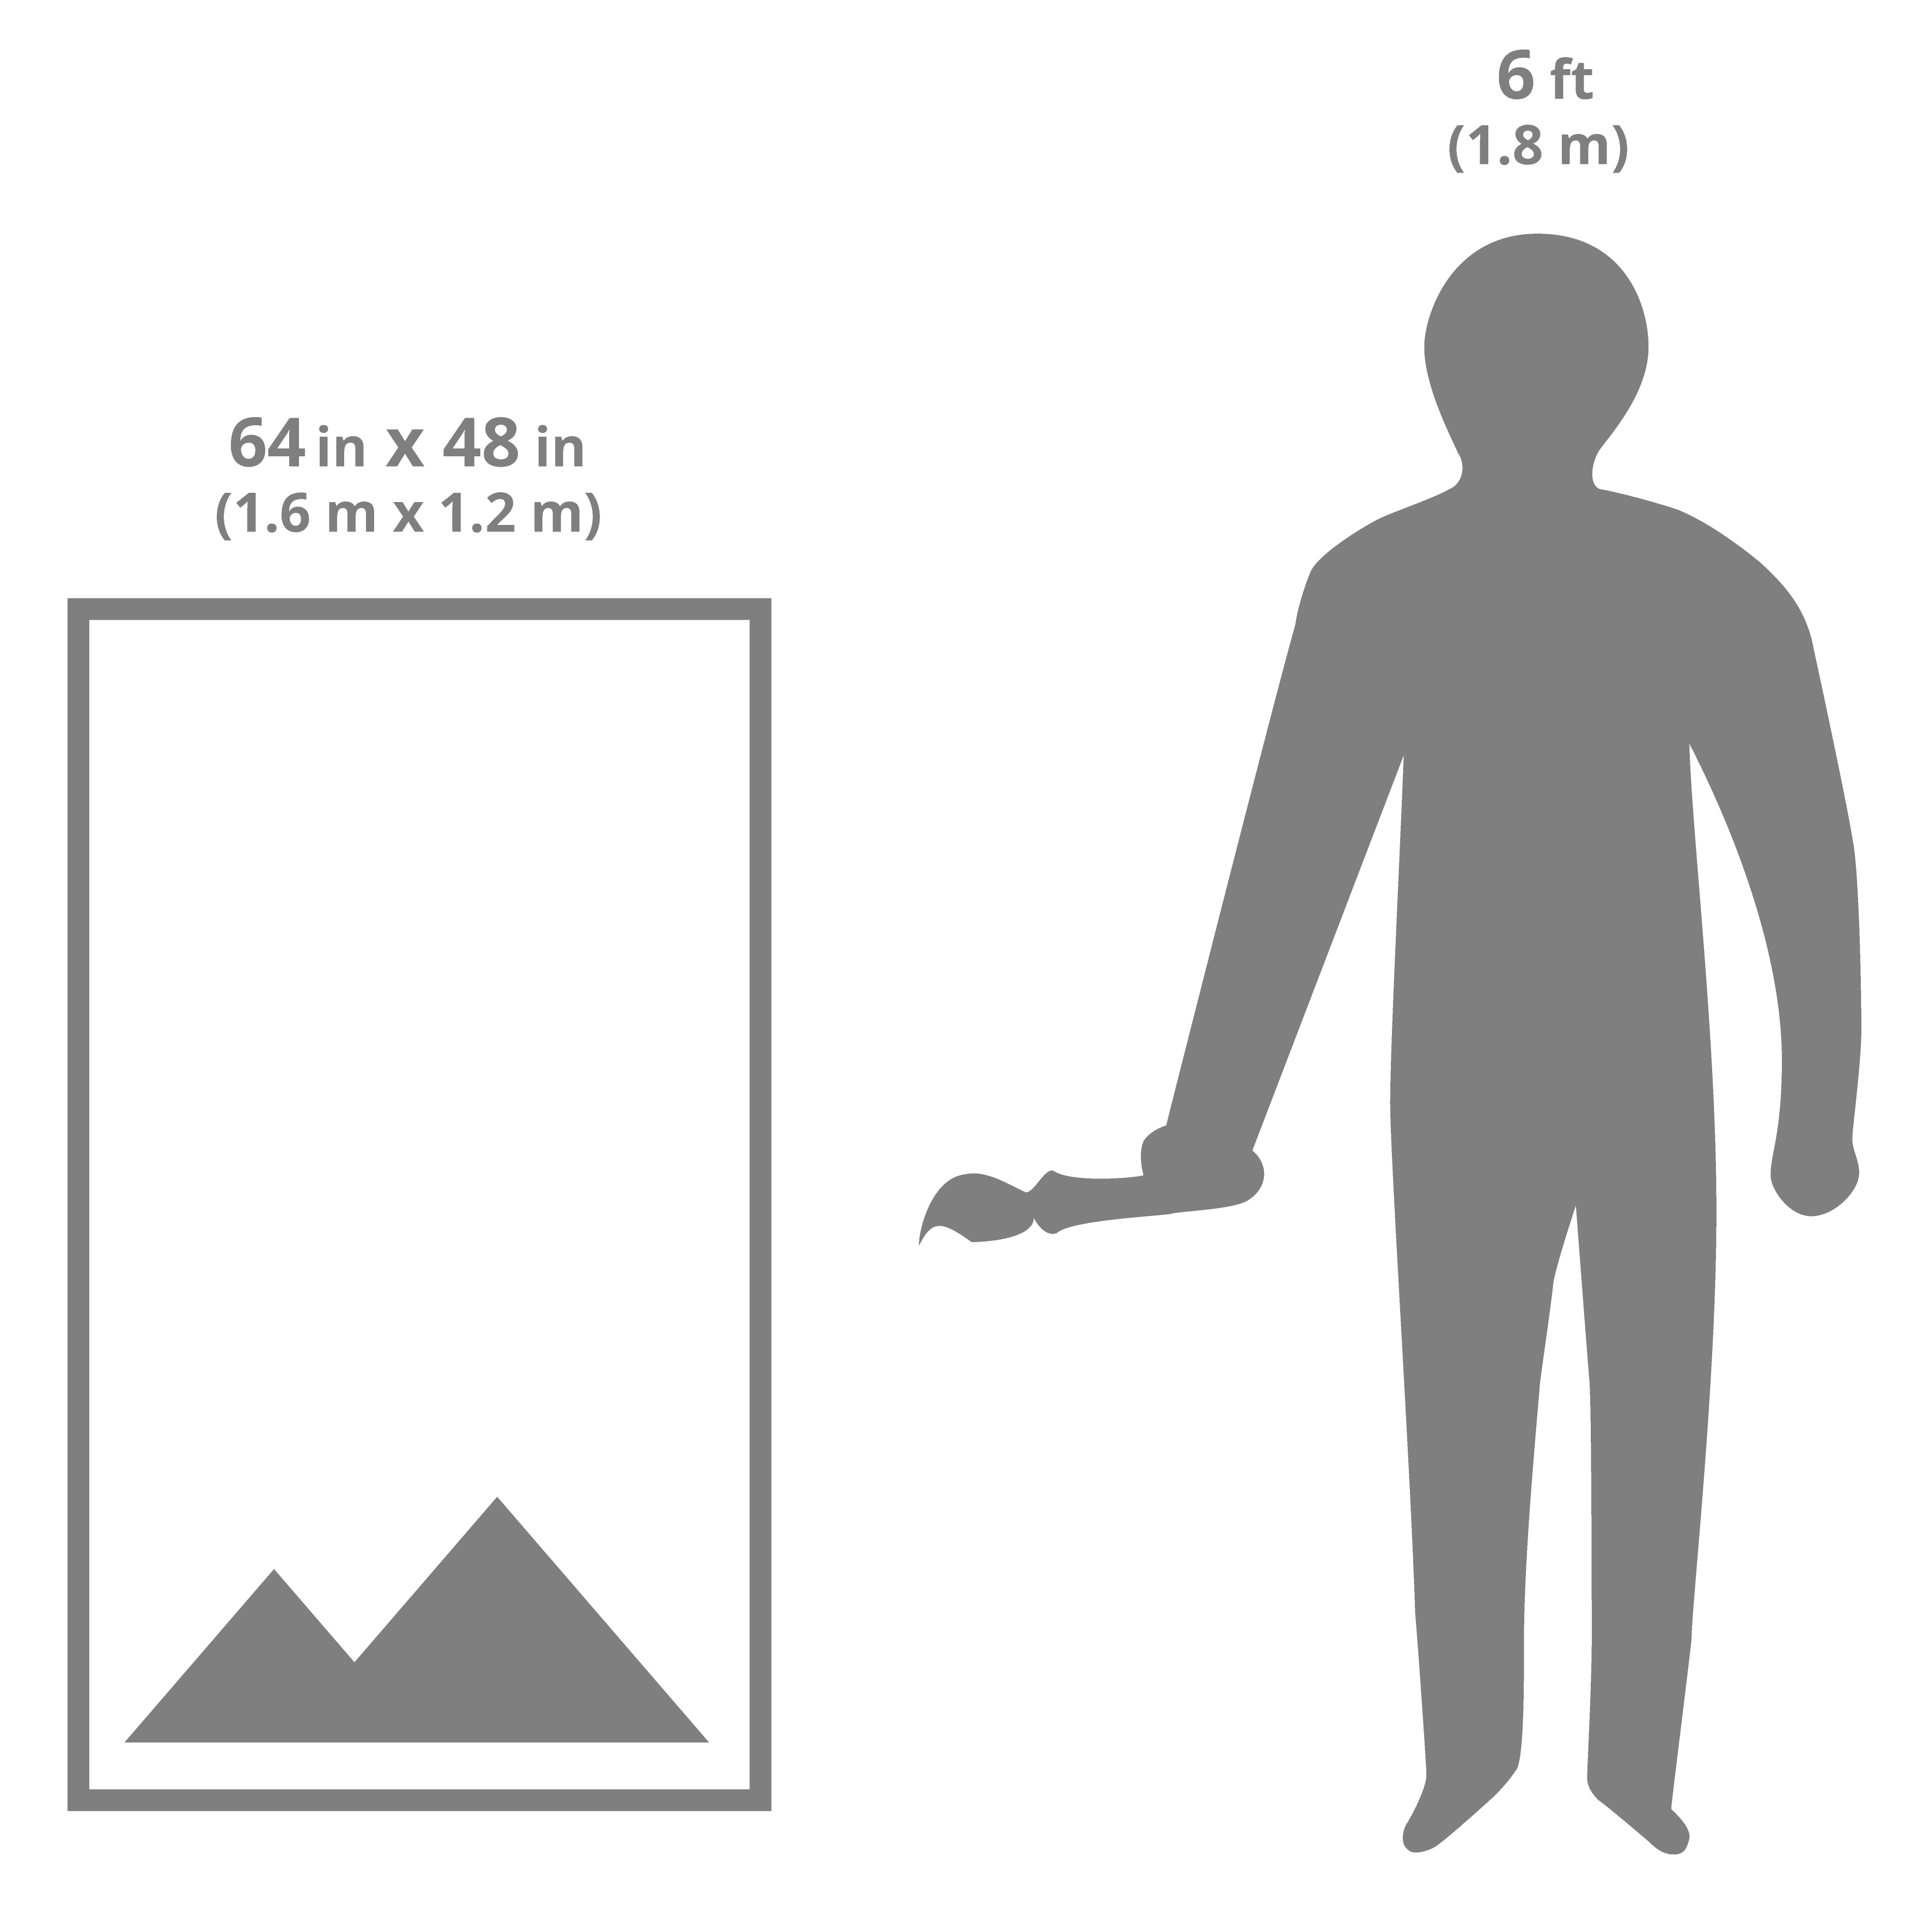 64x48 art sizing scale image